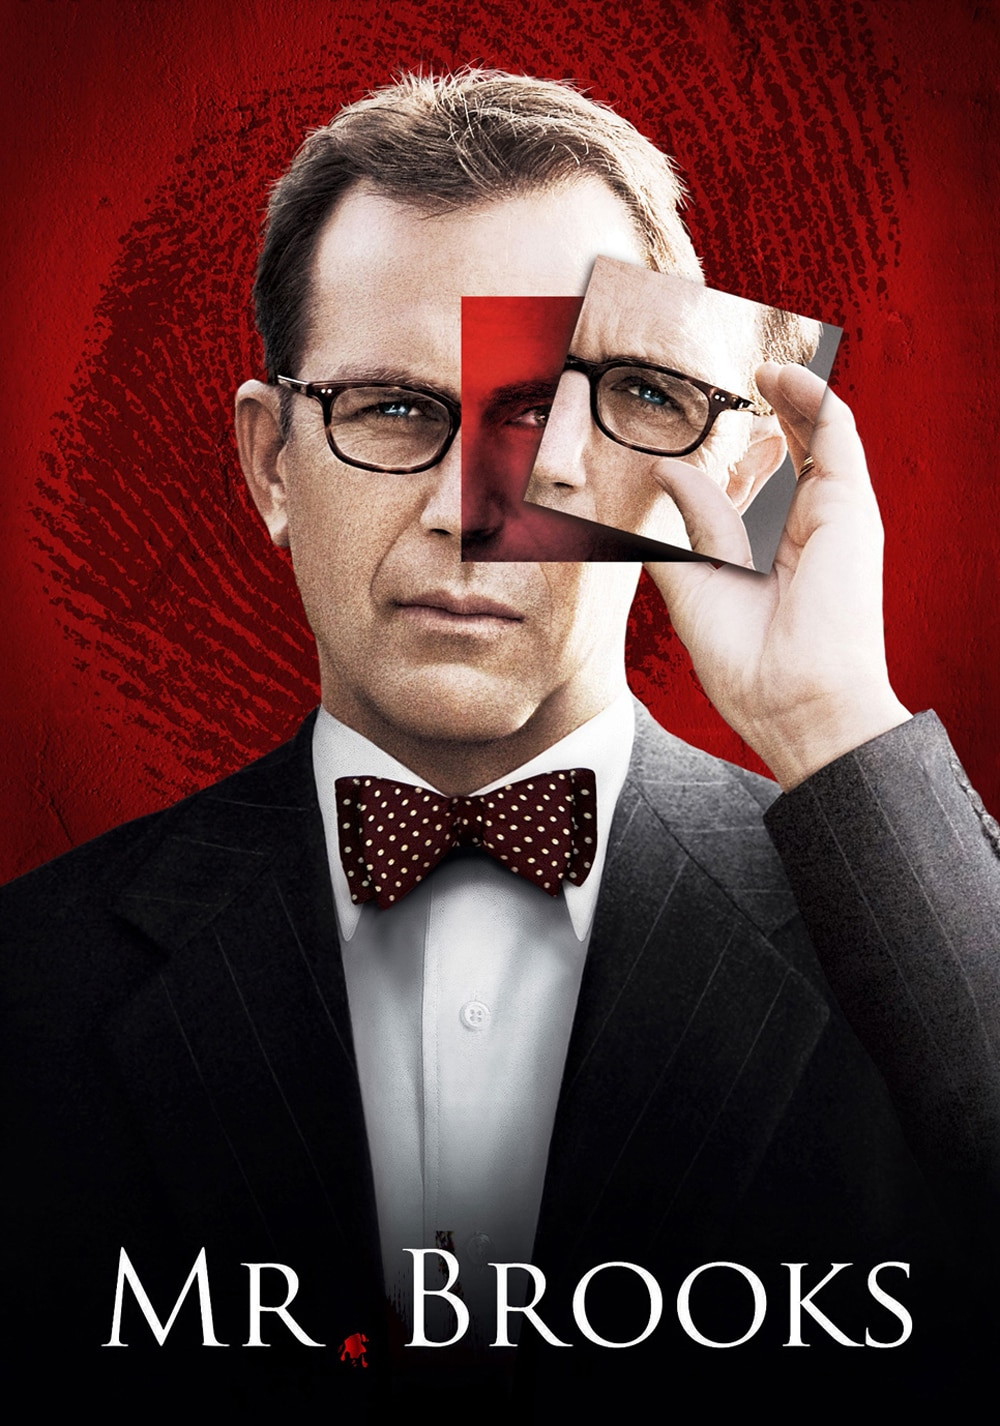 mr brooks poster - Here's What MR. BROOKS 2 & 3 Would've Been About